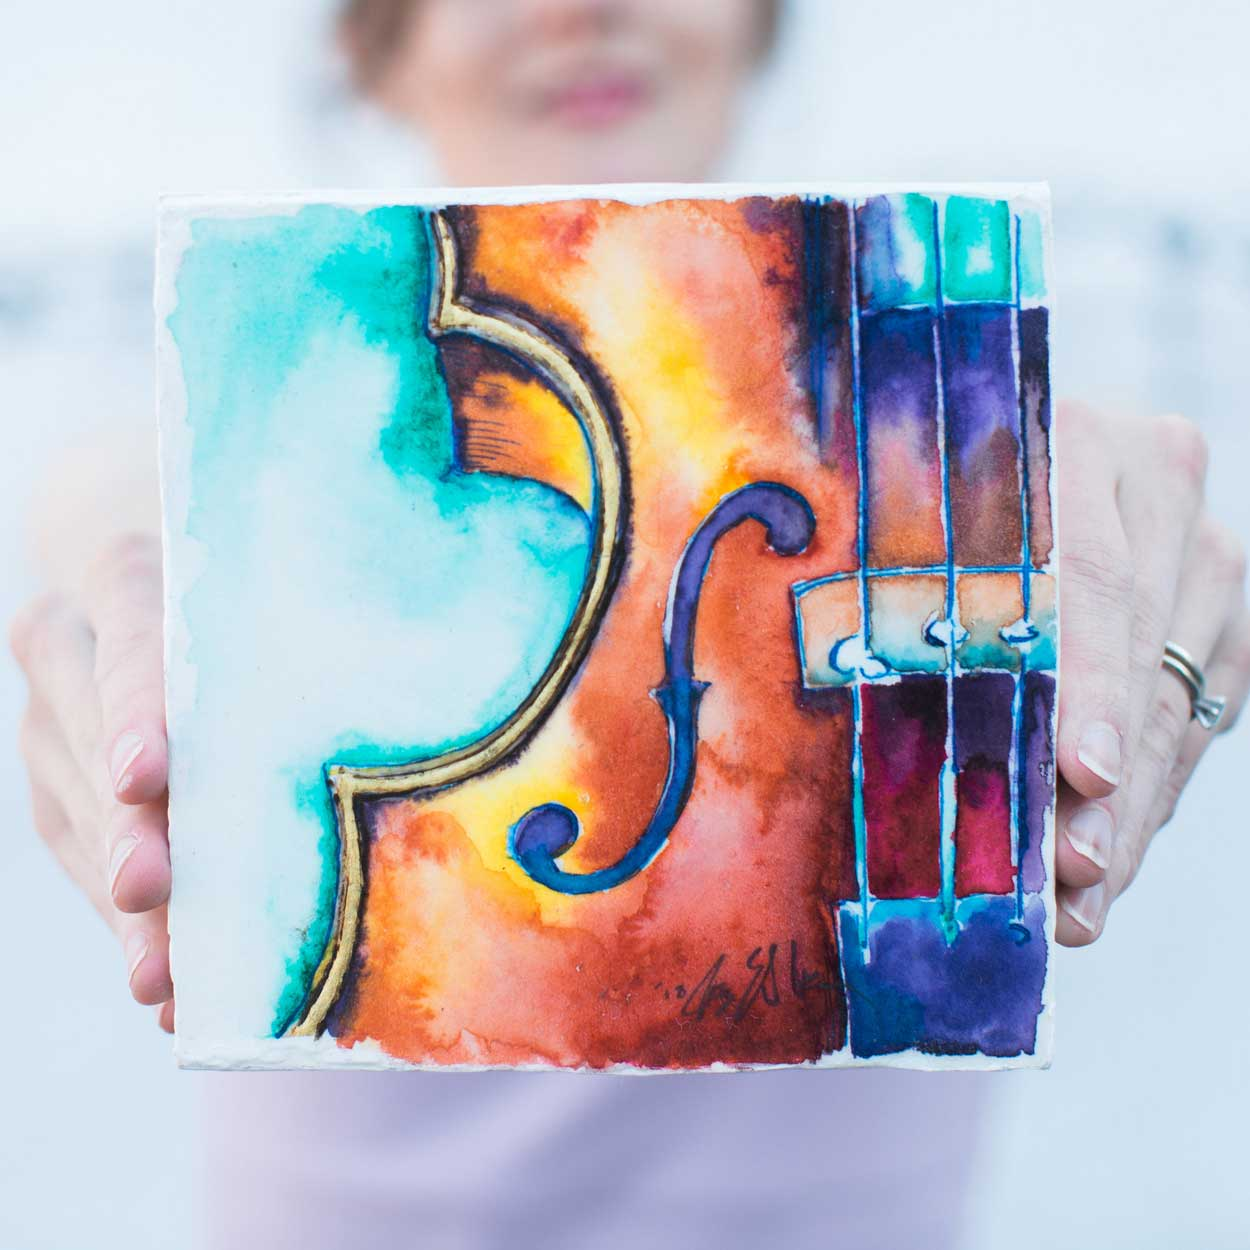 What I Meant to Say - 6x6 Watercolor of a violin